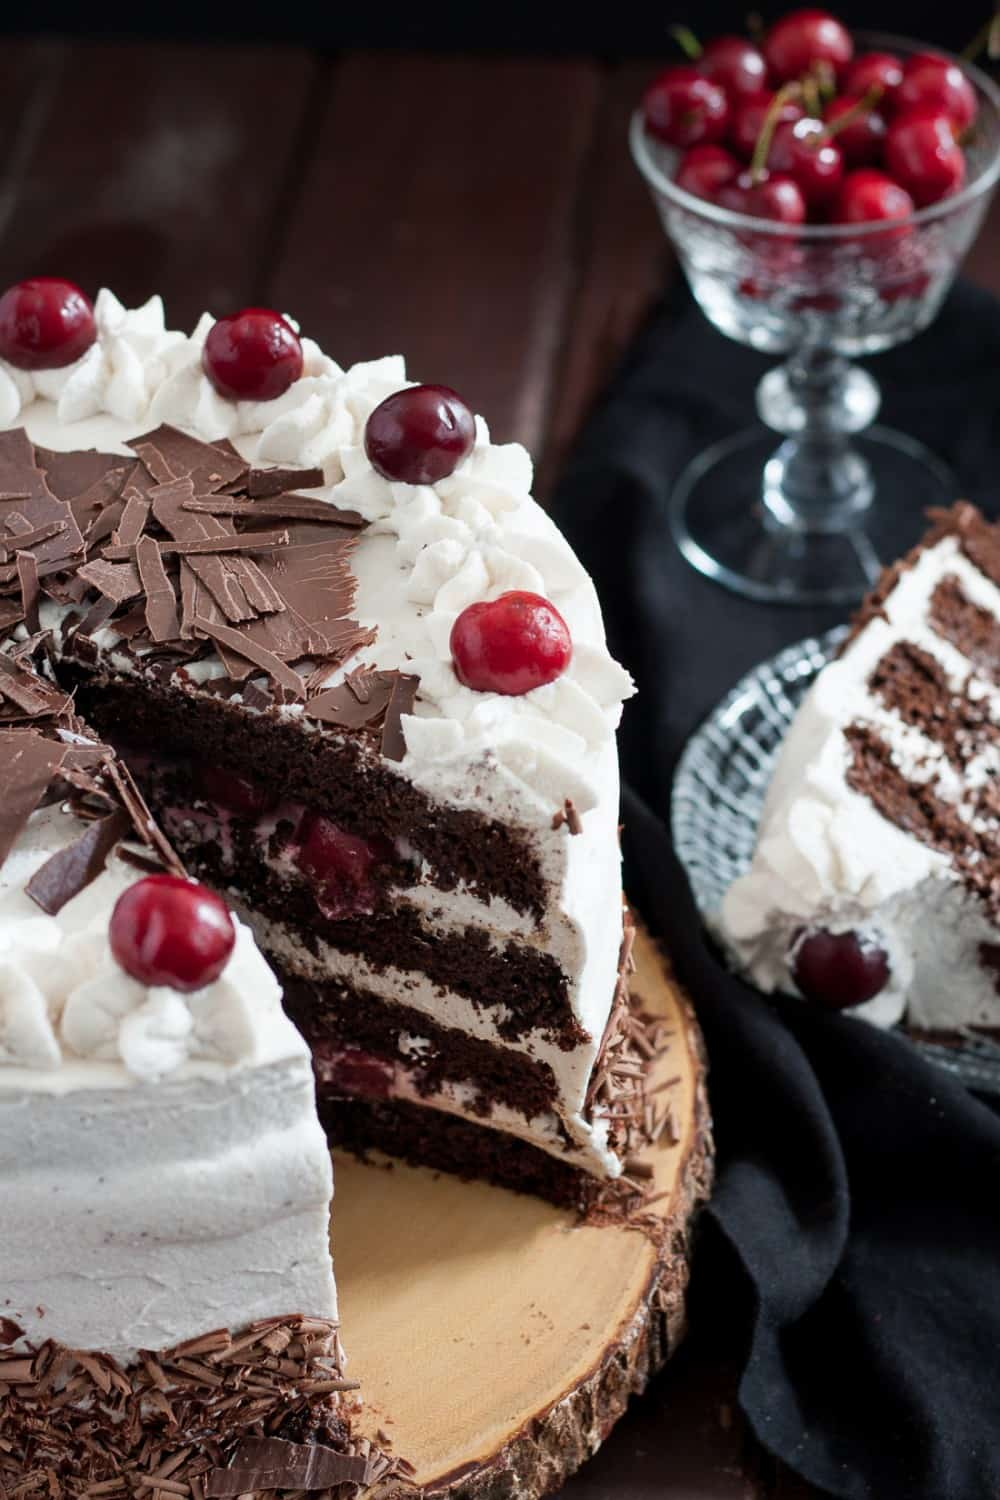 Chocolate Cake Decorated With Cherries